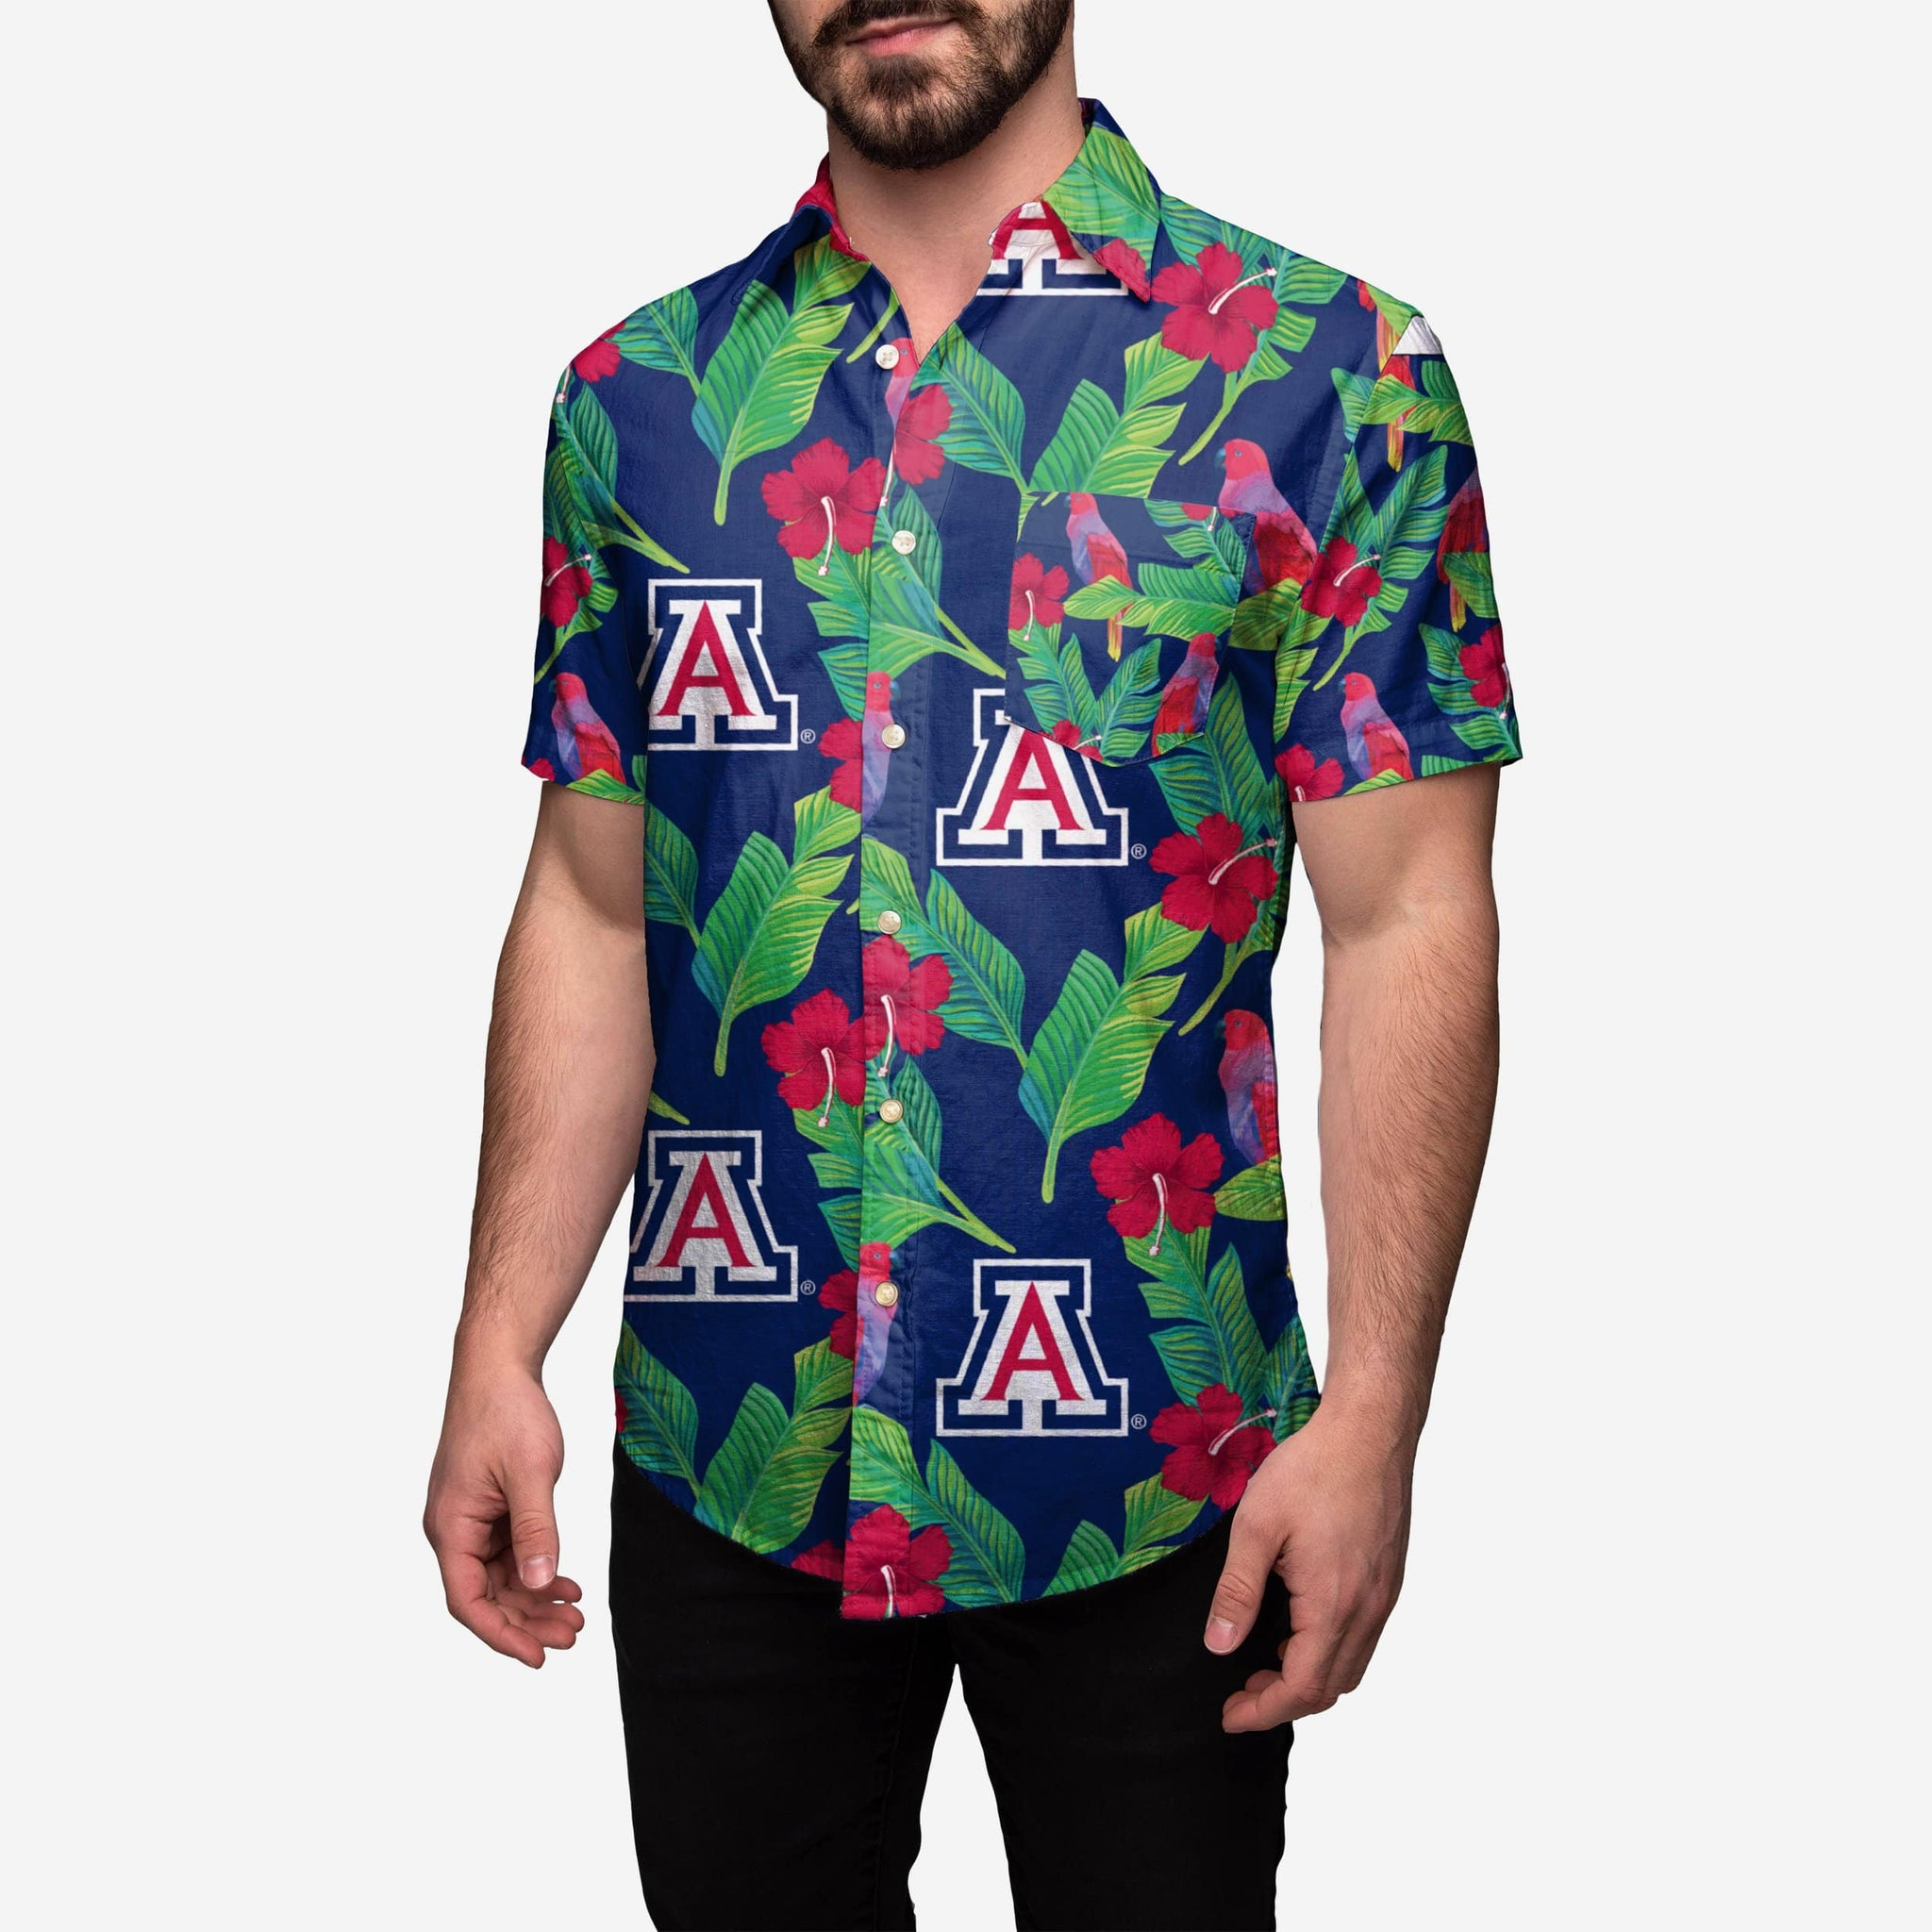 Arizona Wildcats Floral Button Up Shirt